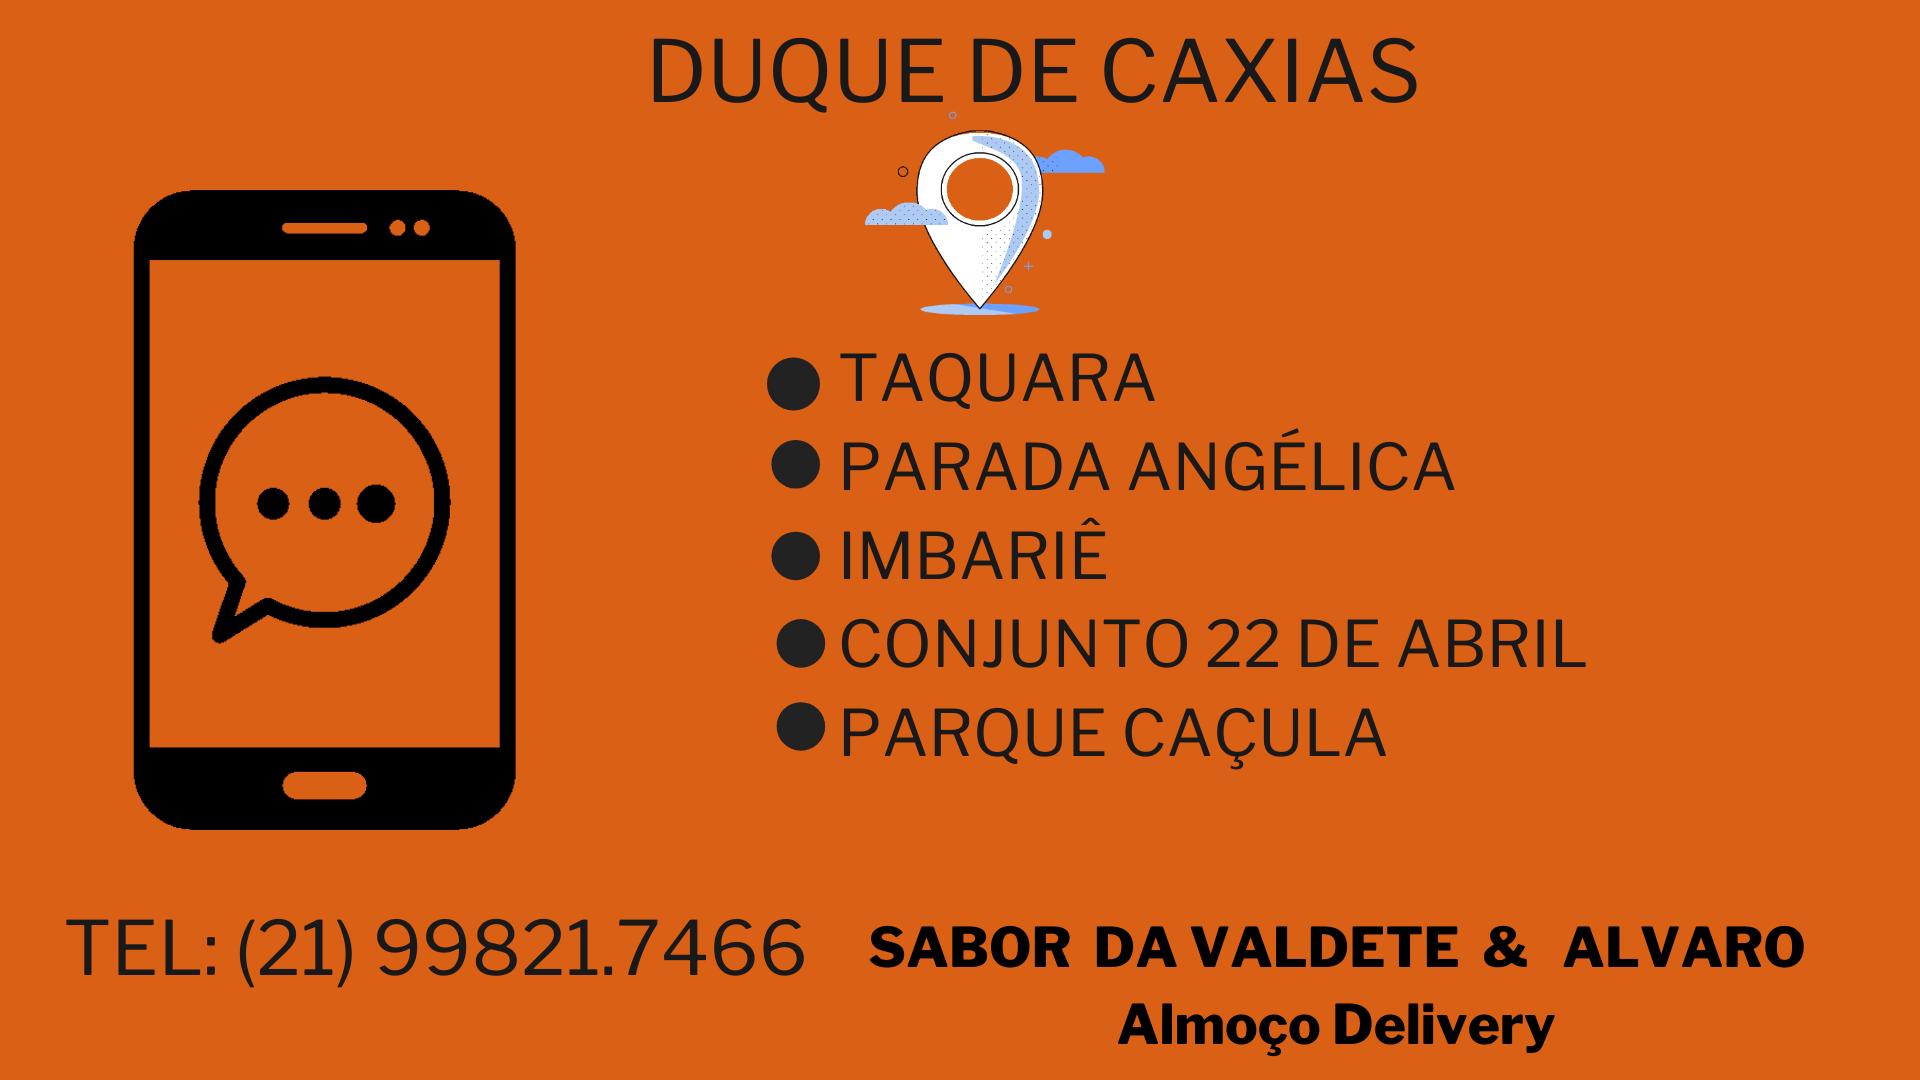 ALMOÇO_DELIVERY